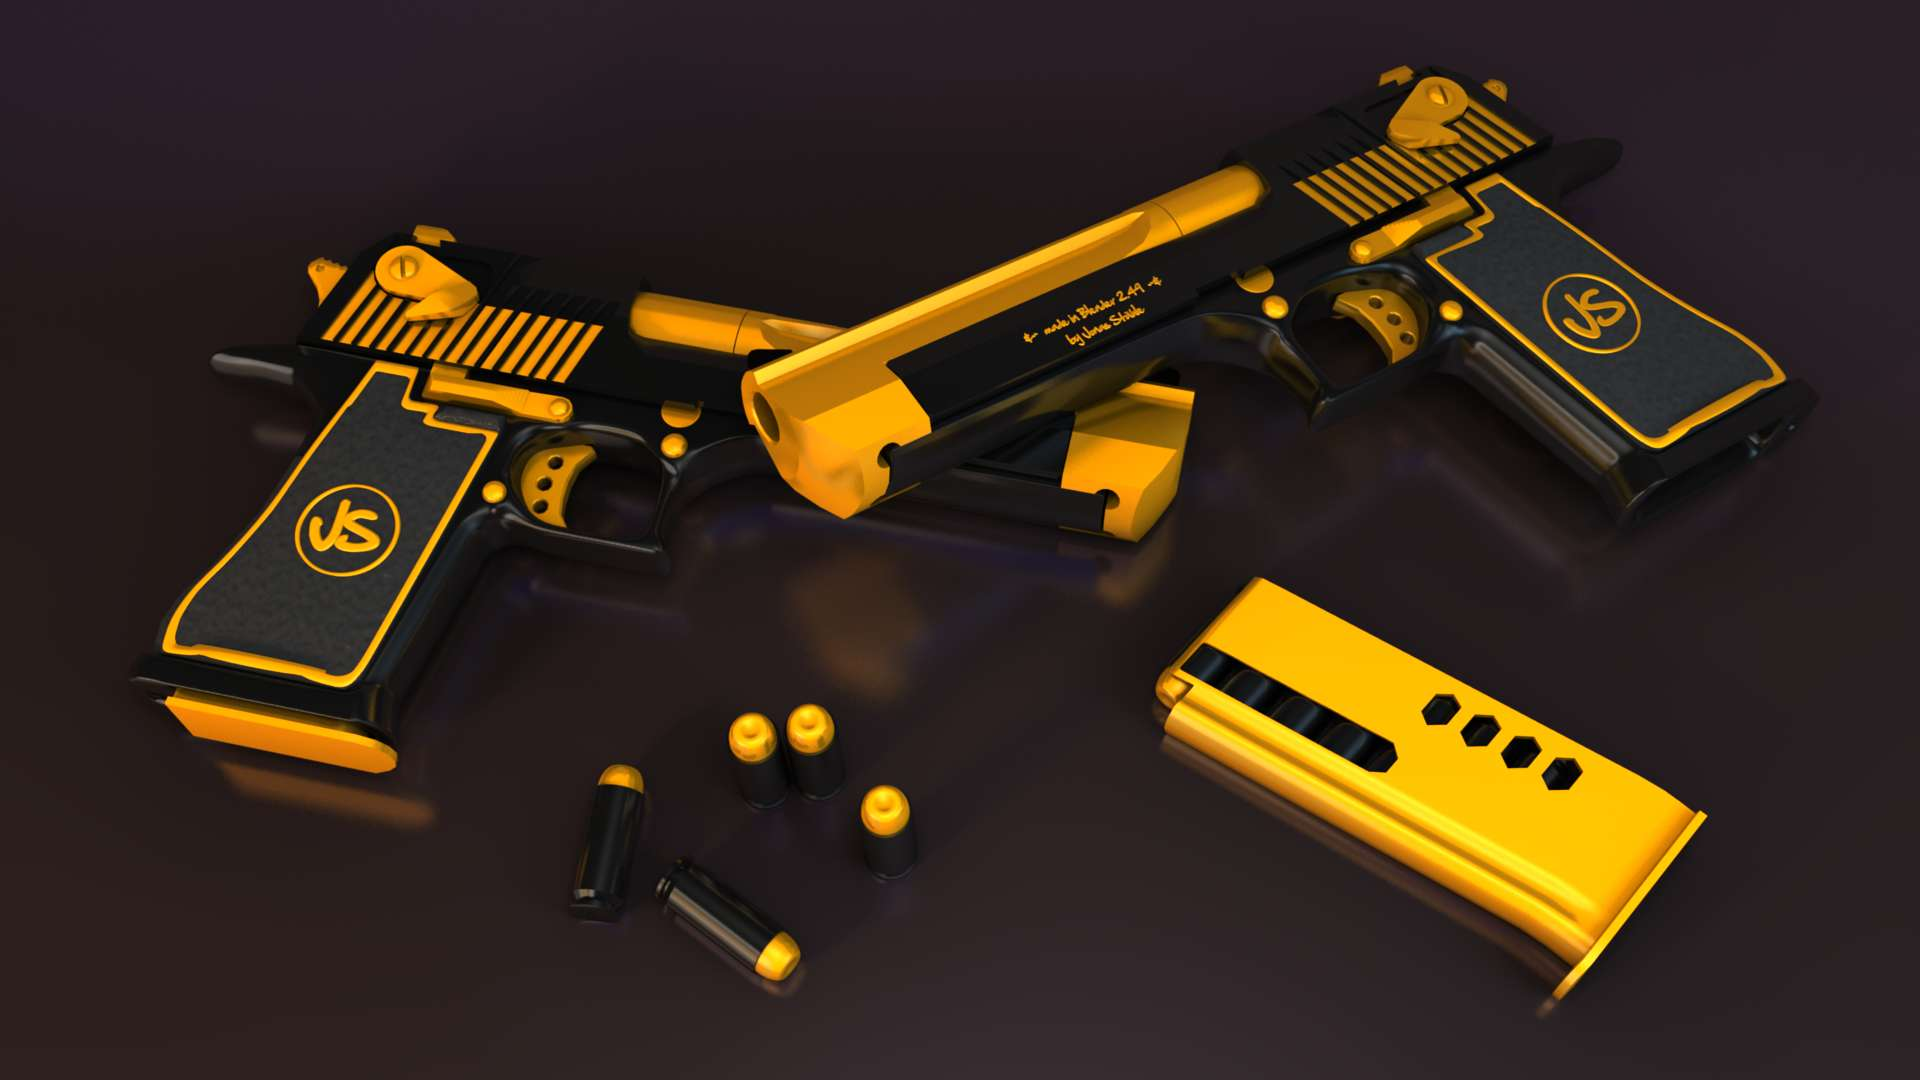 21 2015 By Stephen Comments Off on Desert Eagle Pistol HD Wallpapers 1920x1080